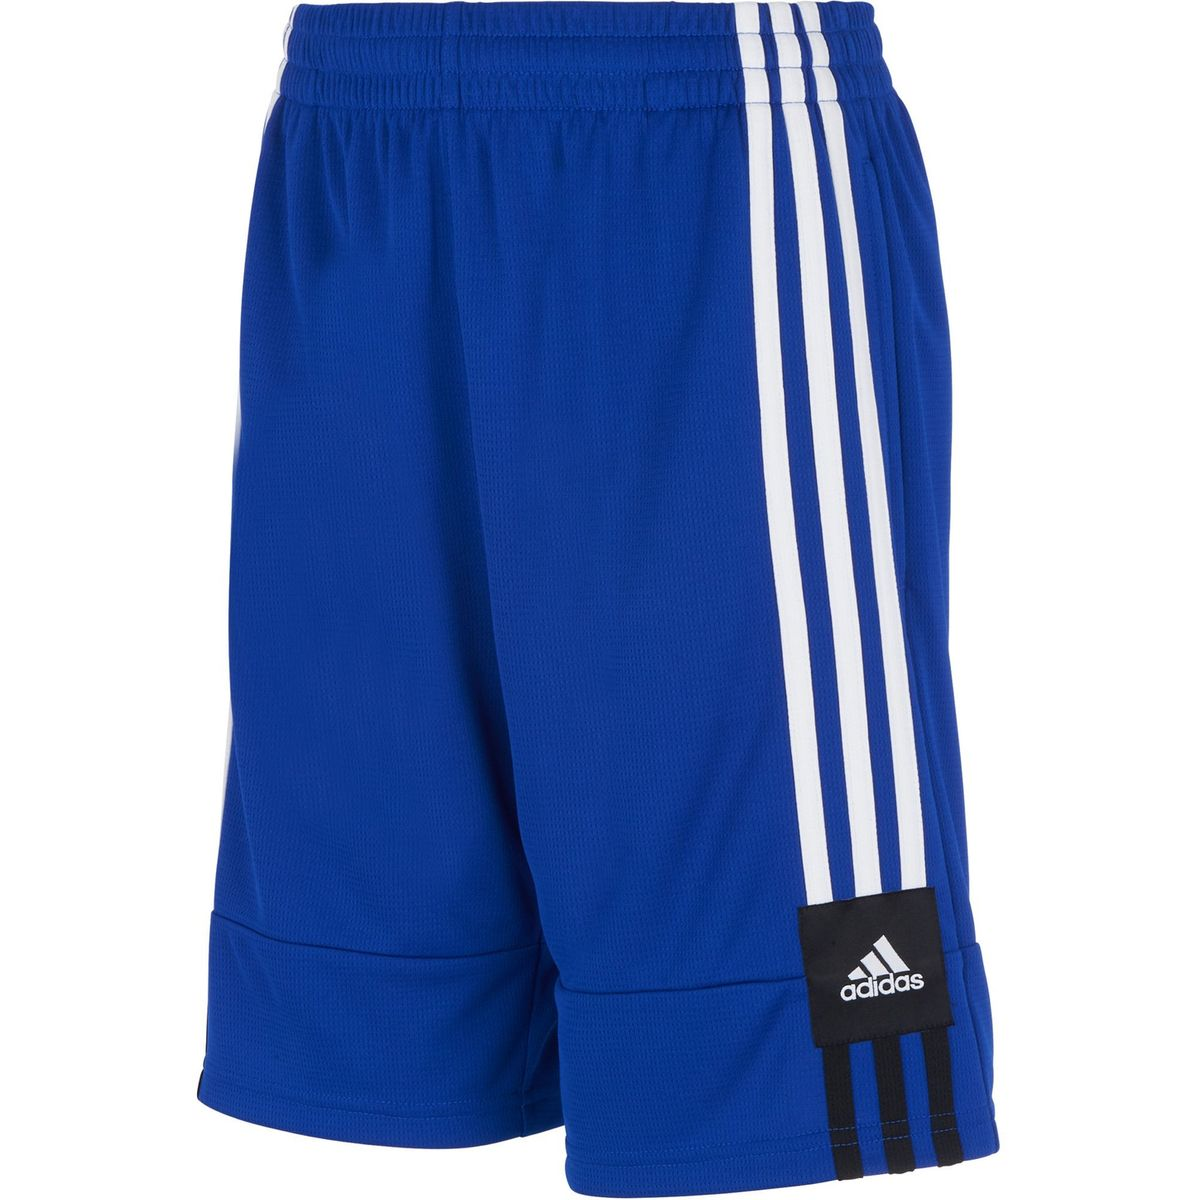 Comfy Jersey Fabric Boys Adidas Sport Everyday Shorts Draw String Waist